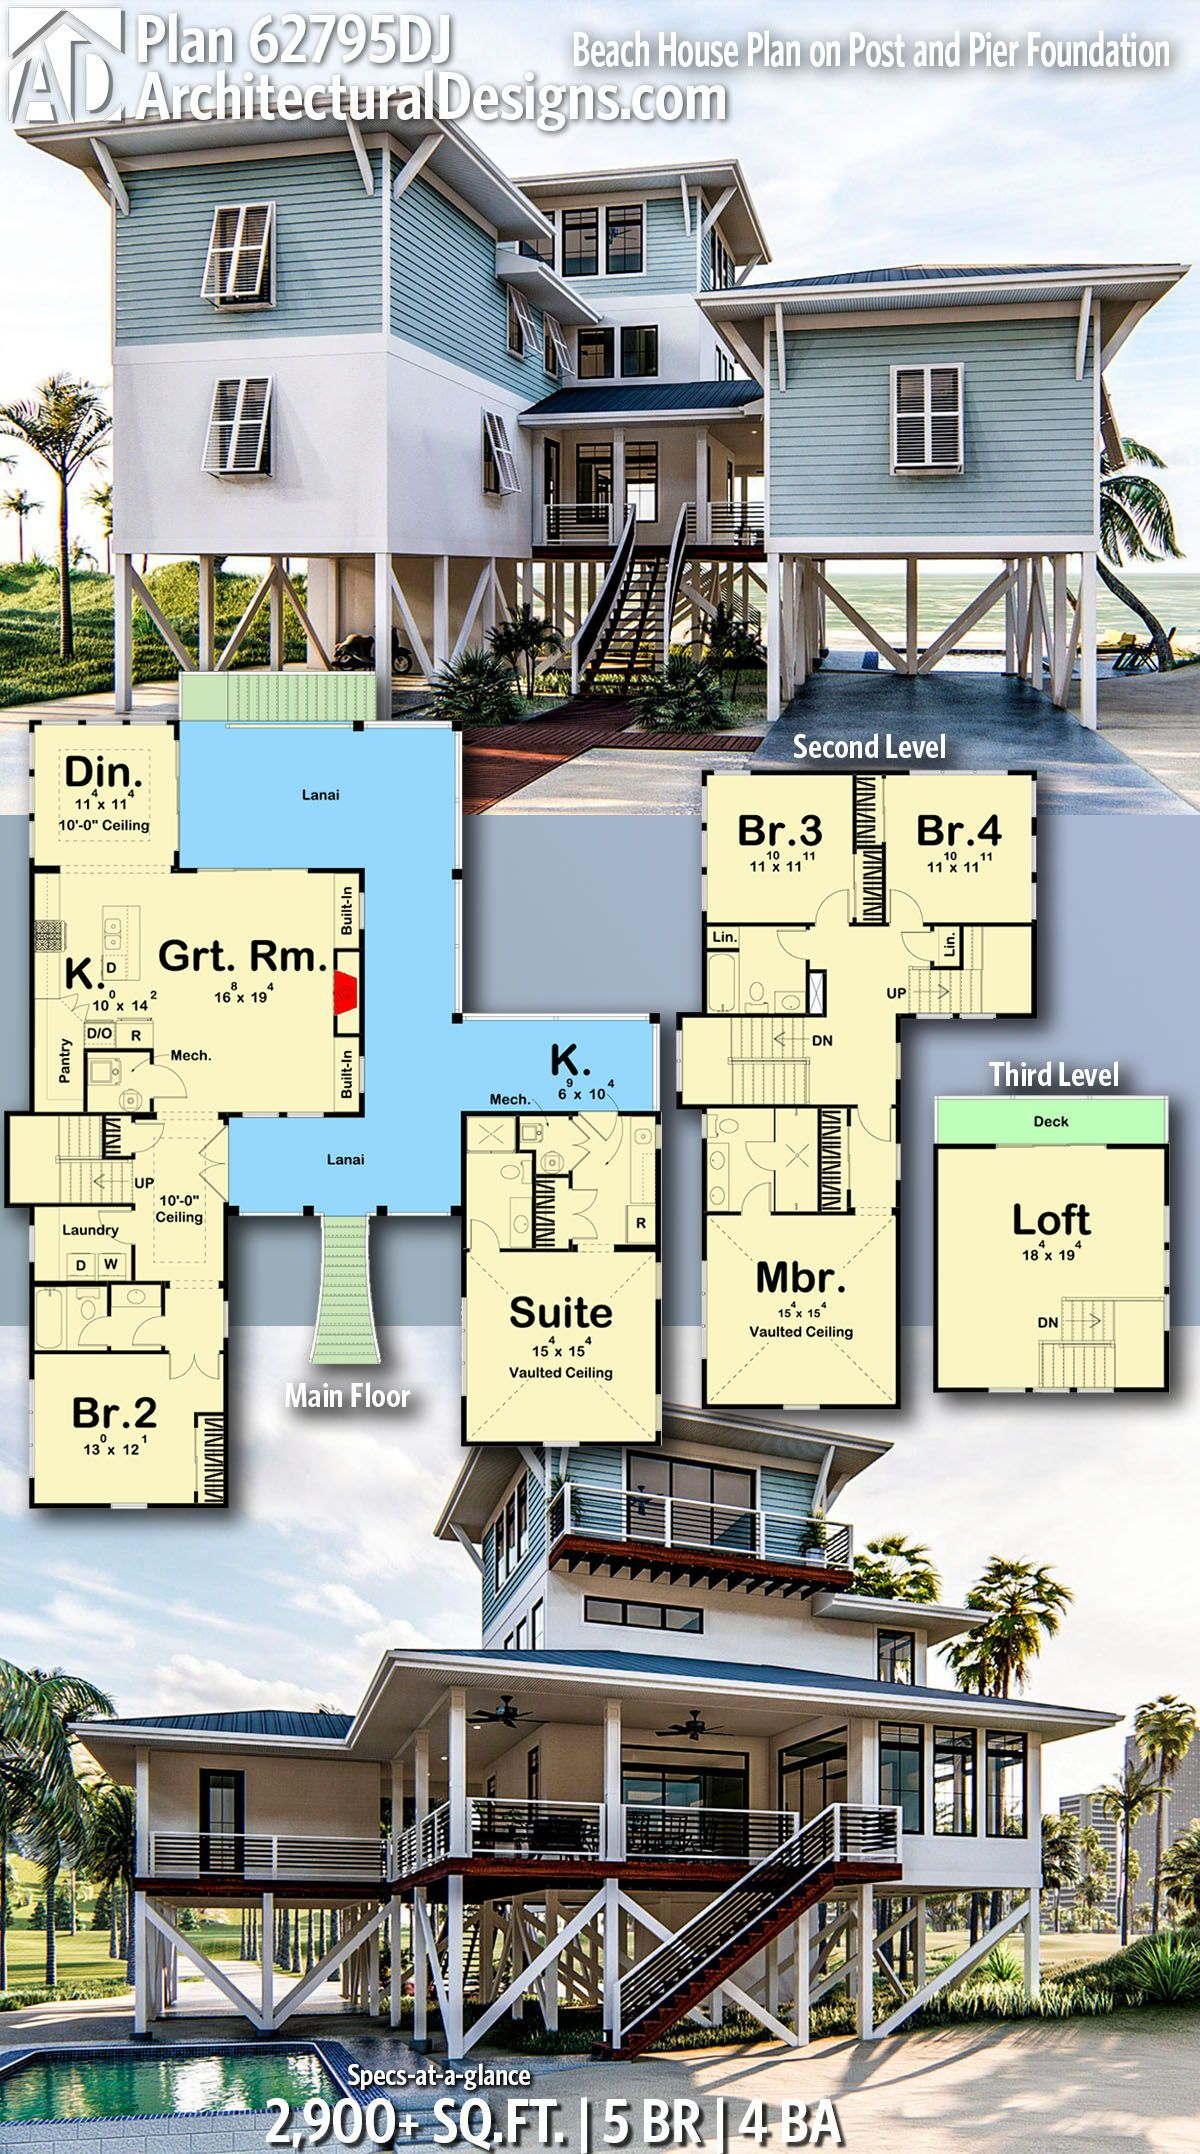 Architectural Designs Beach Home Plan 62795DJ gives you 5 bedrooms, 4 baths and 2,900+ sq. ft. Ready when you are! Where do YOU want to build? #62795DJ #adhouseplans #coastal #architecturaldesigns #houseplans #architecture #newhome #beach #vacation #newconstruction #newhouse  #homeplans #architecture #home #homesweethome